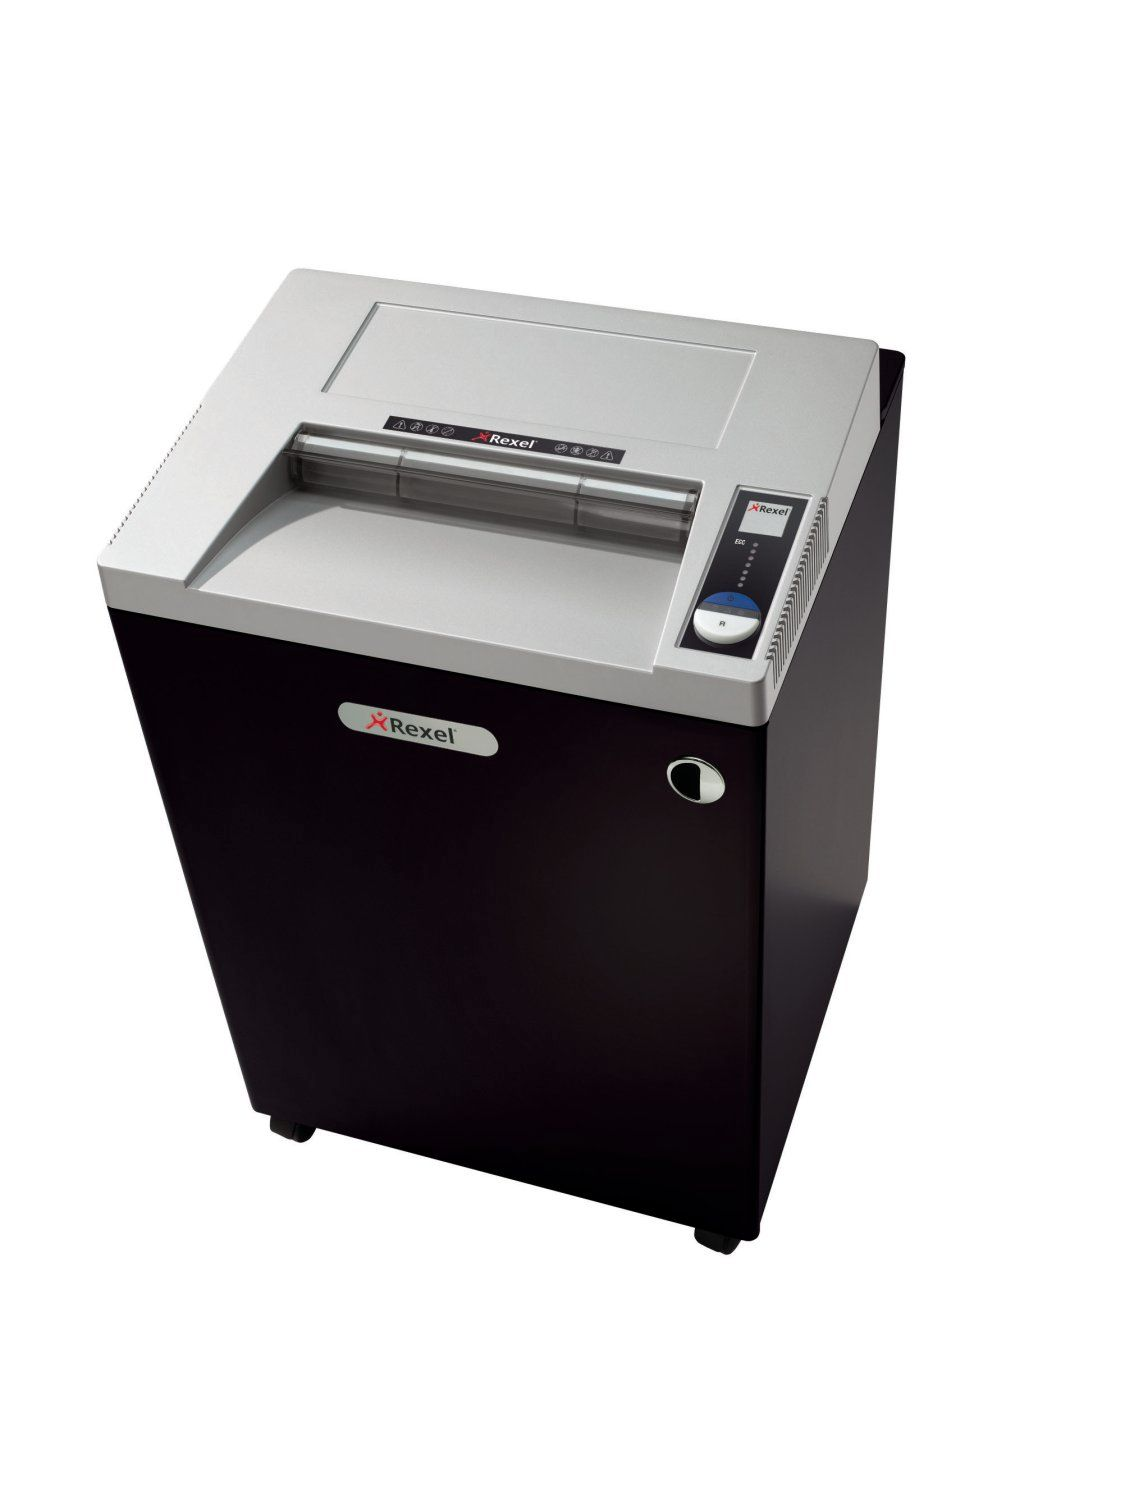 Rexel RLWX25 Wide Cross-Cut Shredder